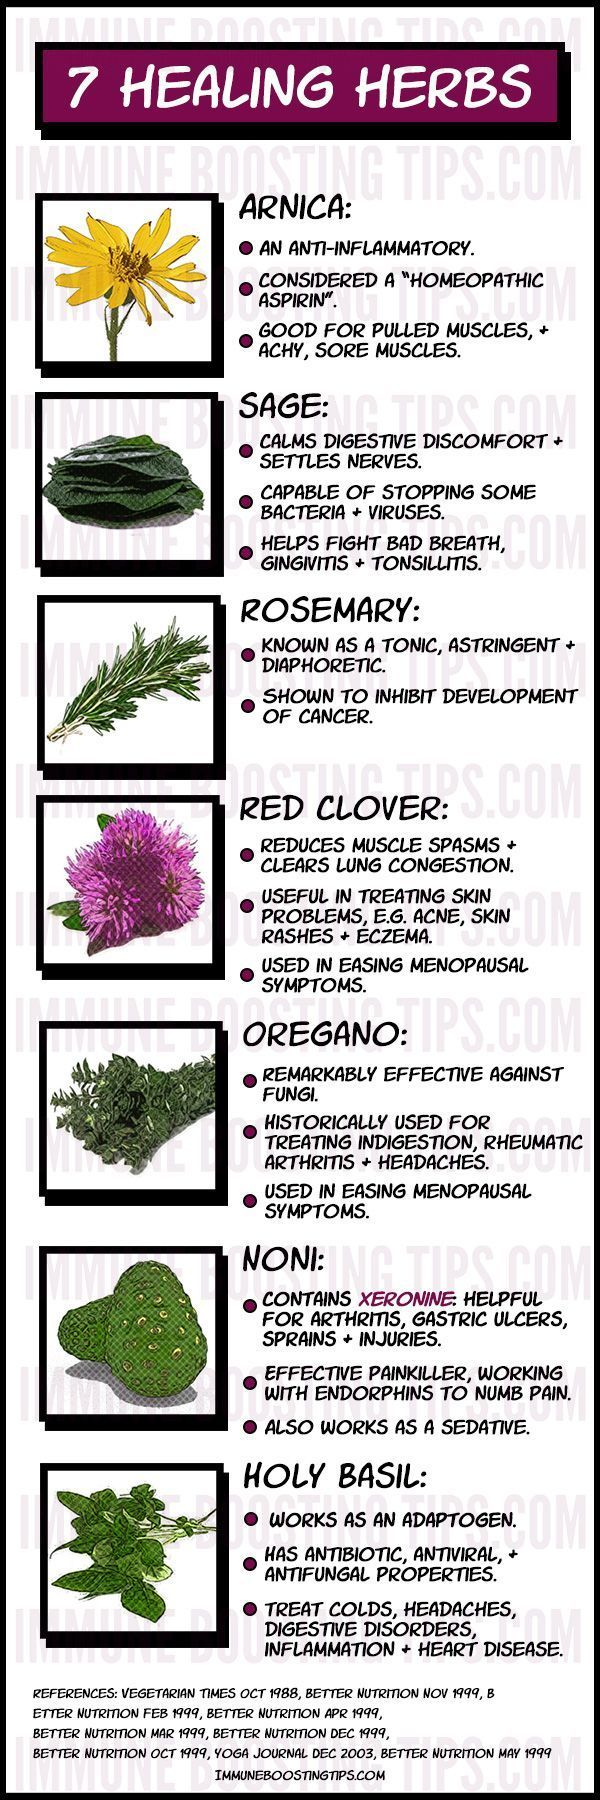 Medicinal Herbs for healing: some the best medicinal plants for healing and boosting immune system health.